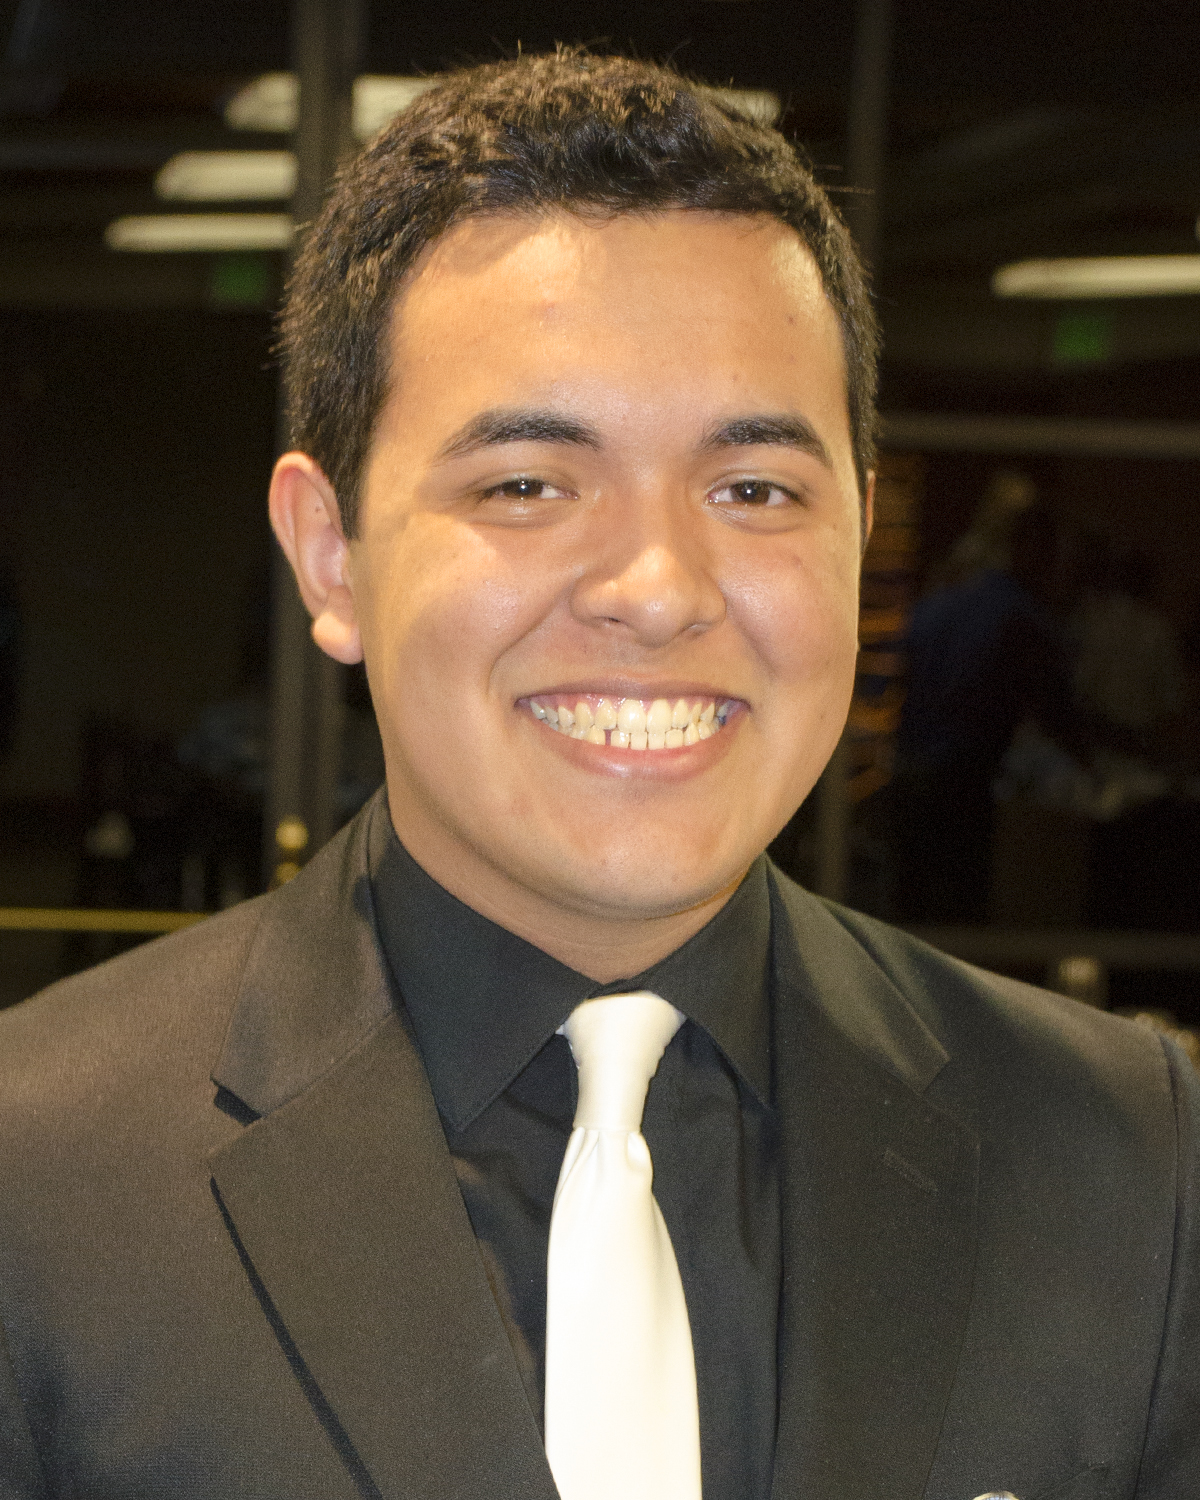 Josue Valle - Drum Major